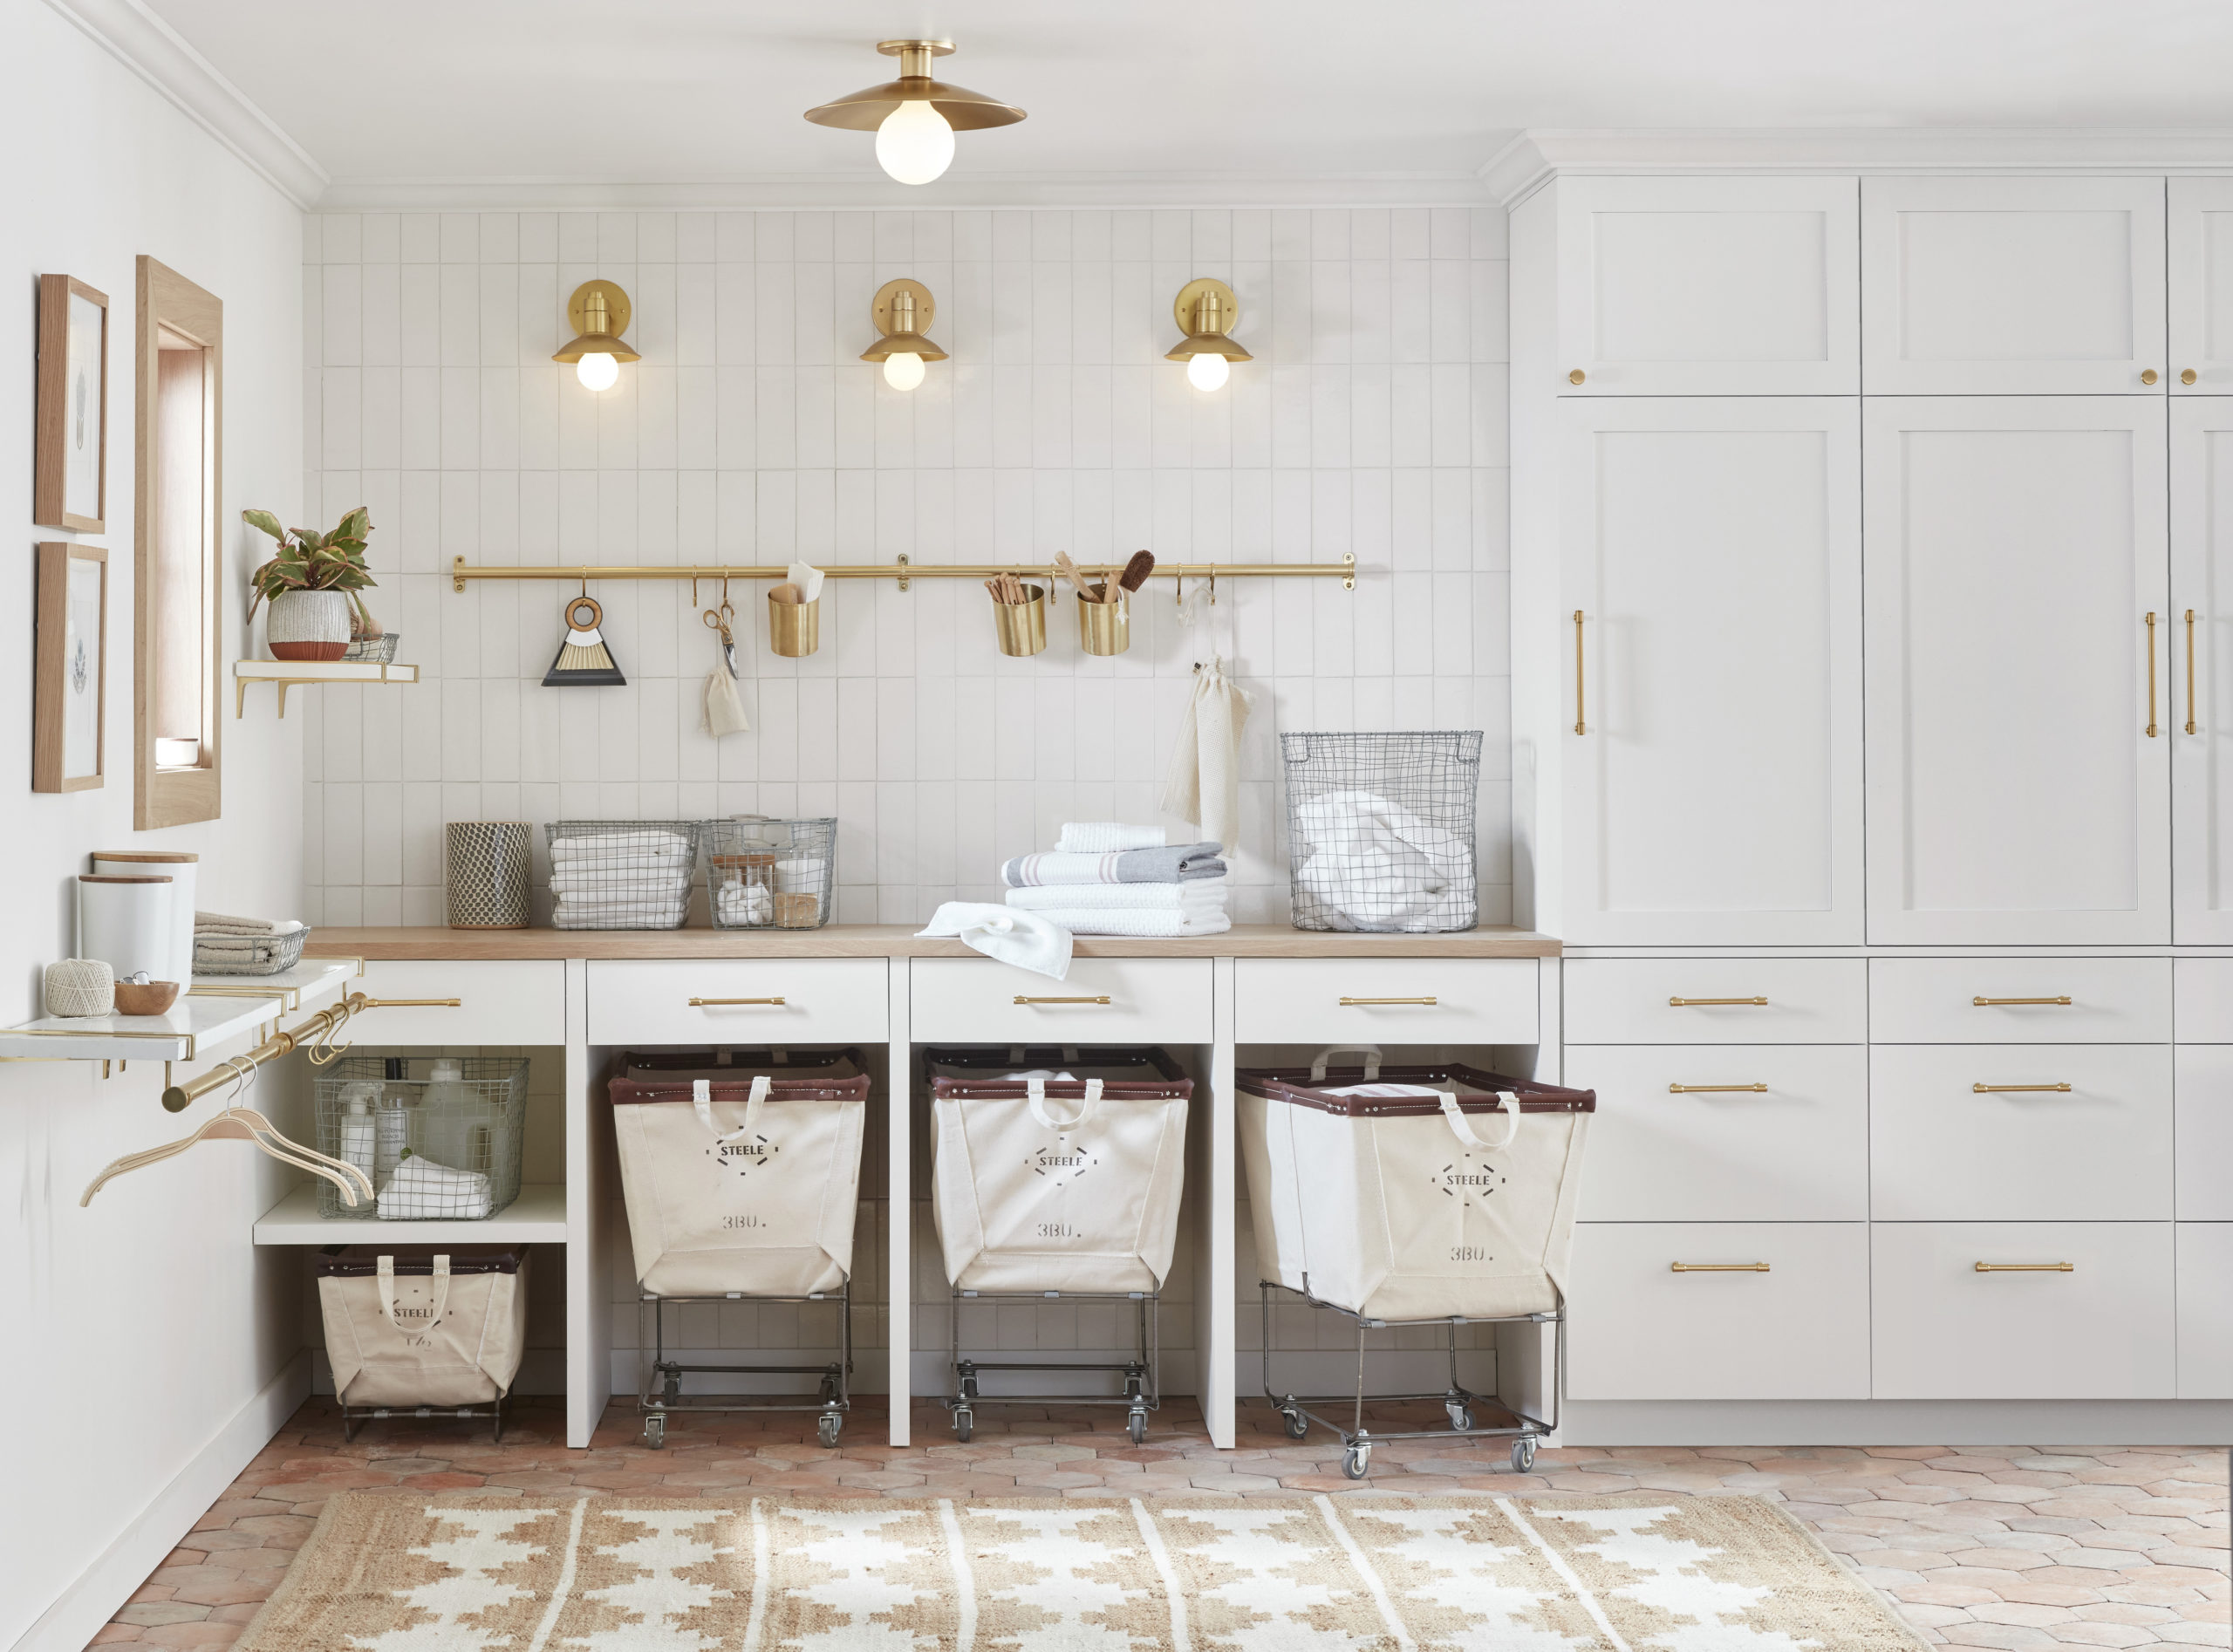 5 Tips for a Good-Looking, Hard-Working Laundry Room via Rejuvenation - Remodelista